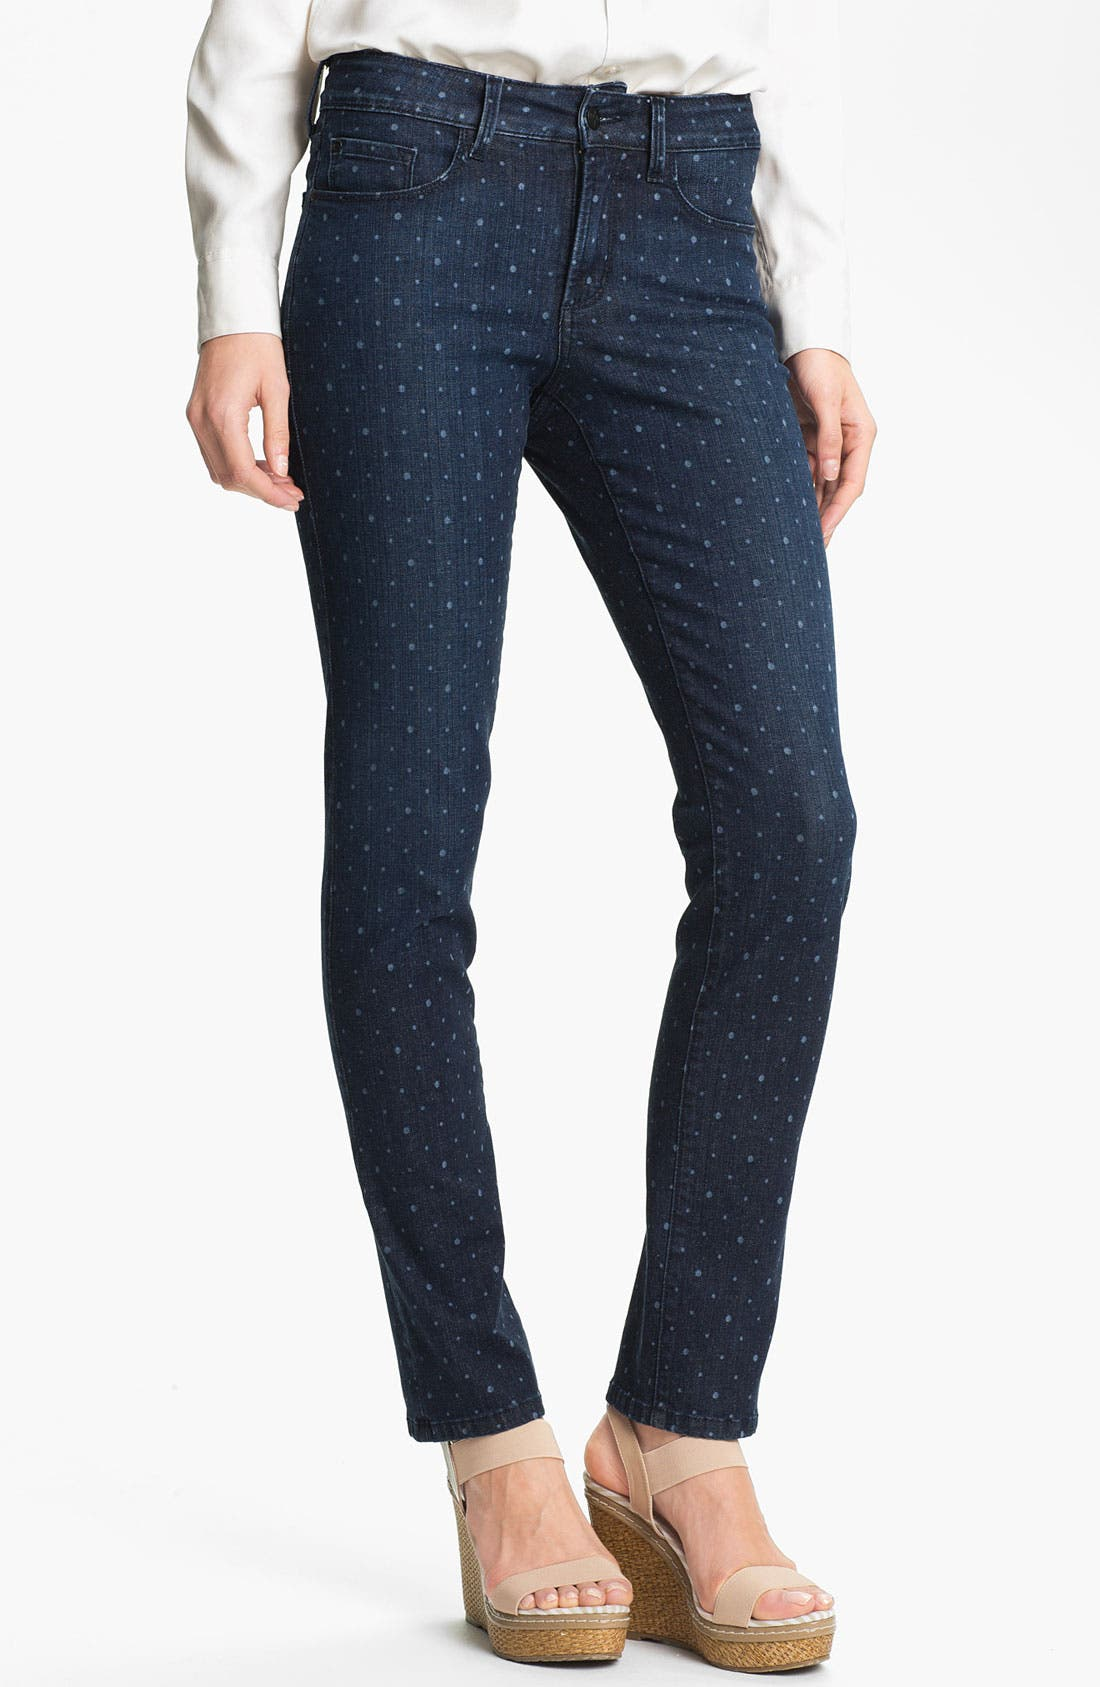 Alternate Image 1 Selected - NYDJ 'Sheri' Dot Print Skinny Ankle Jeans